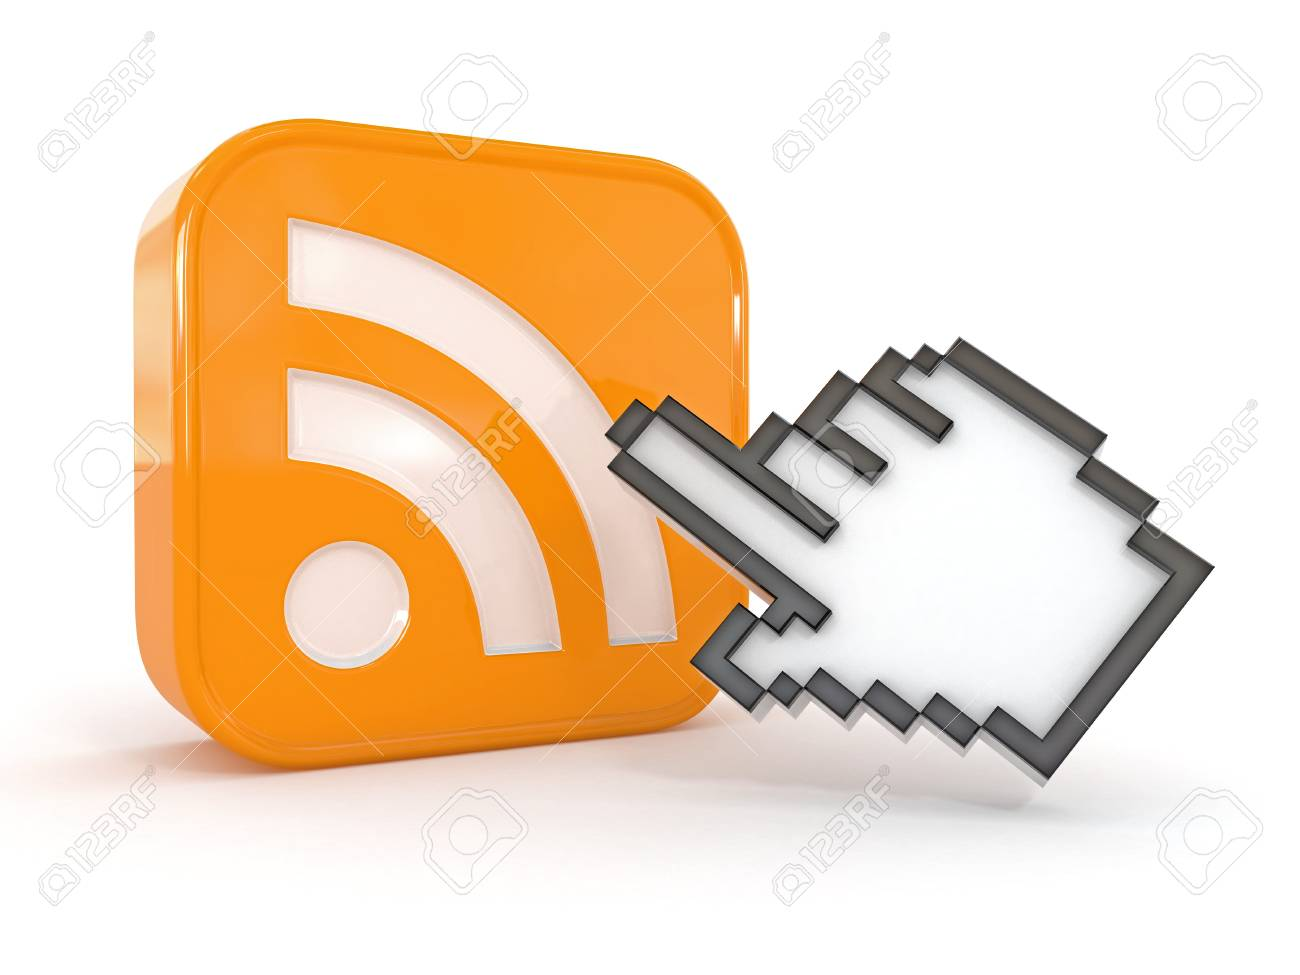 Rss or feed icon and cursor. 3d Stock Photo - 13098979